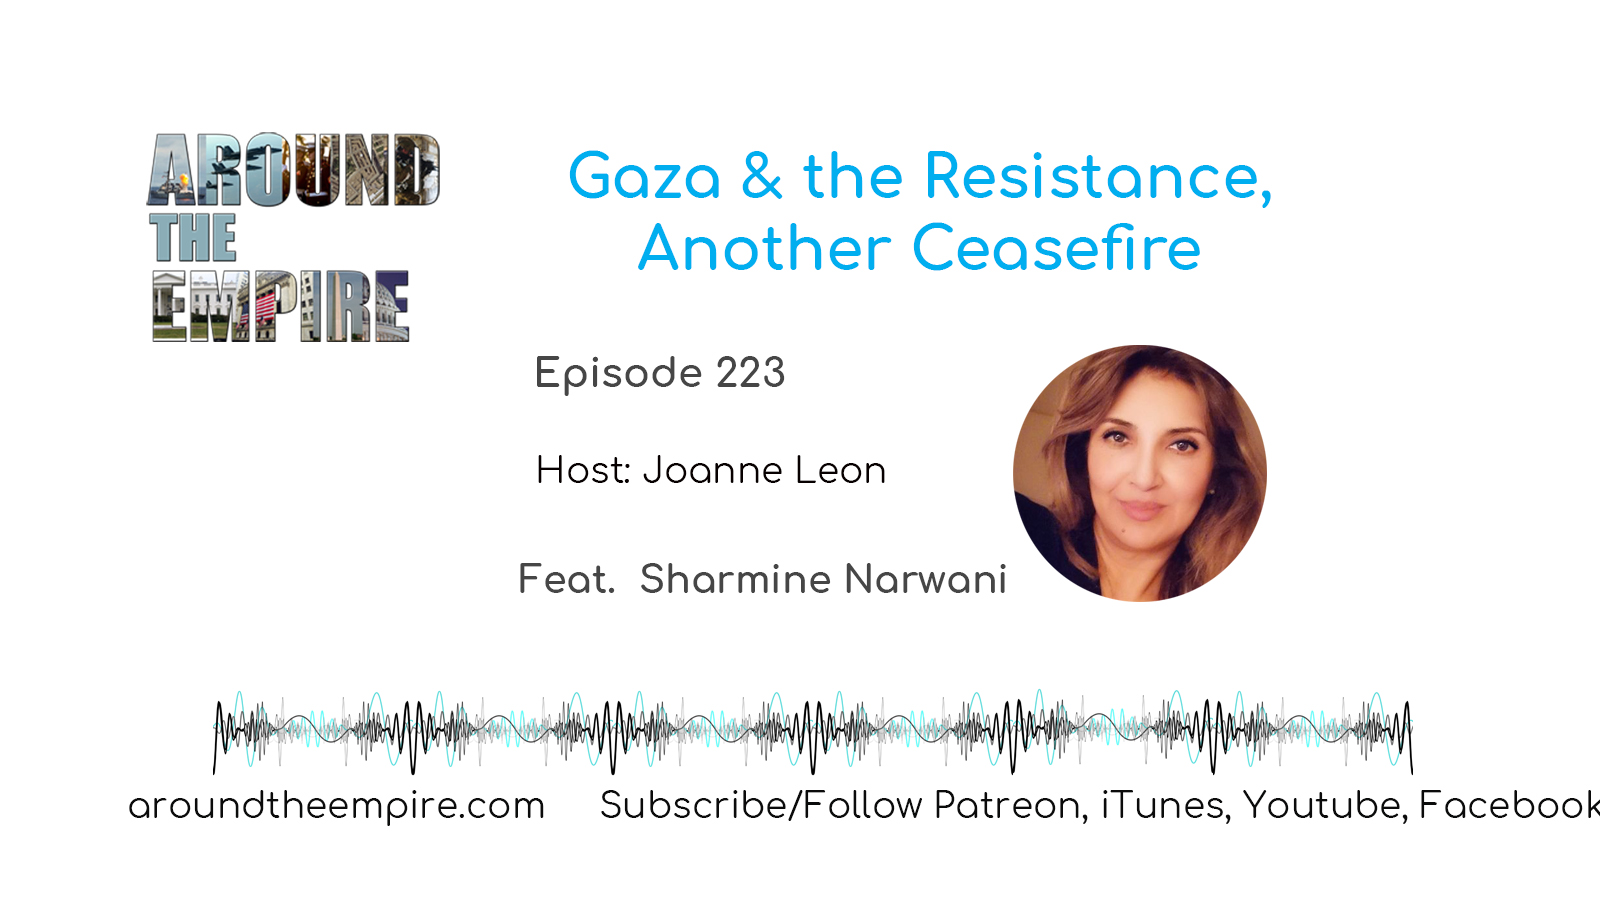 Ep 223 Gaza and the Resistance, Another Ceasefire feat Sharmine